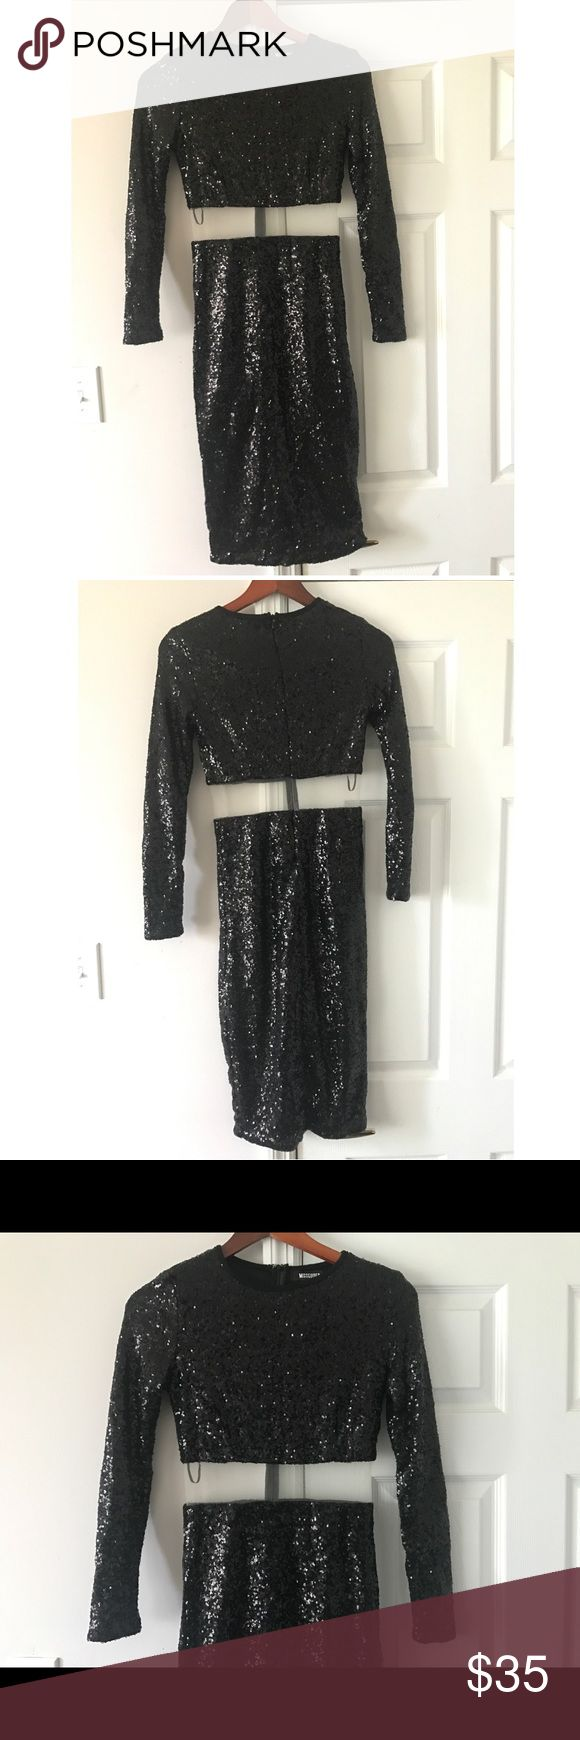 ✨Missguided Black Sequin Dress Sz 8 UK✨ Missguided knee length black sequin dress in a U.K. Size 8. This is a US Size 6, but fits more like a 4, There is some stretch but not too much. This dress is super cute! It is long sleeved and sequined, but with a super cute mesh panel right underneath the bust. There is a zipper down the back. Great dress for holiday parties. Missguided Dresses Midi